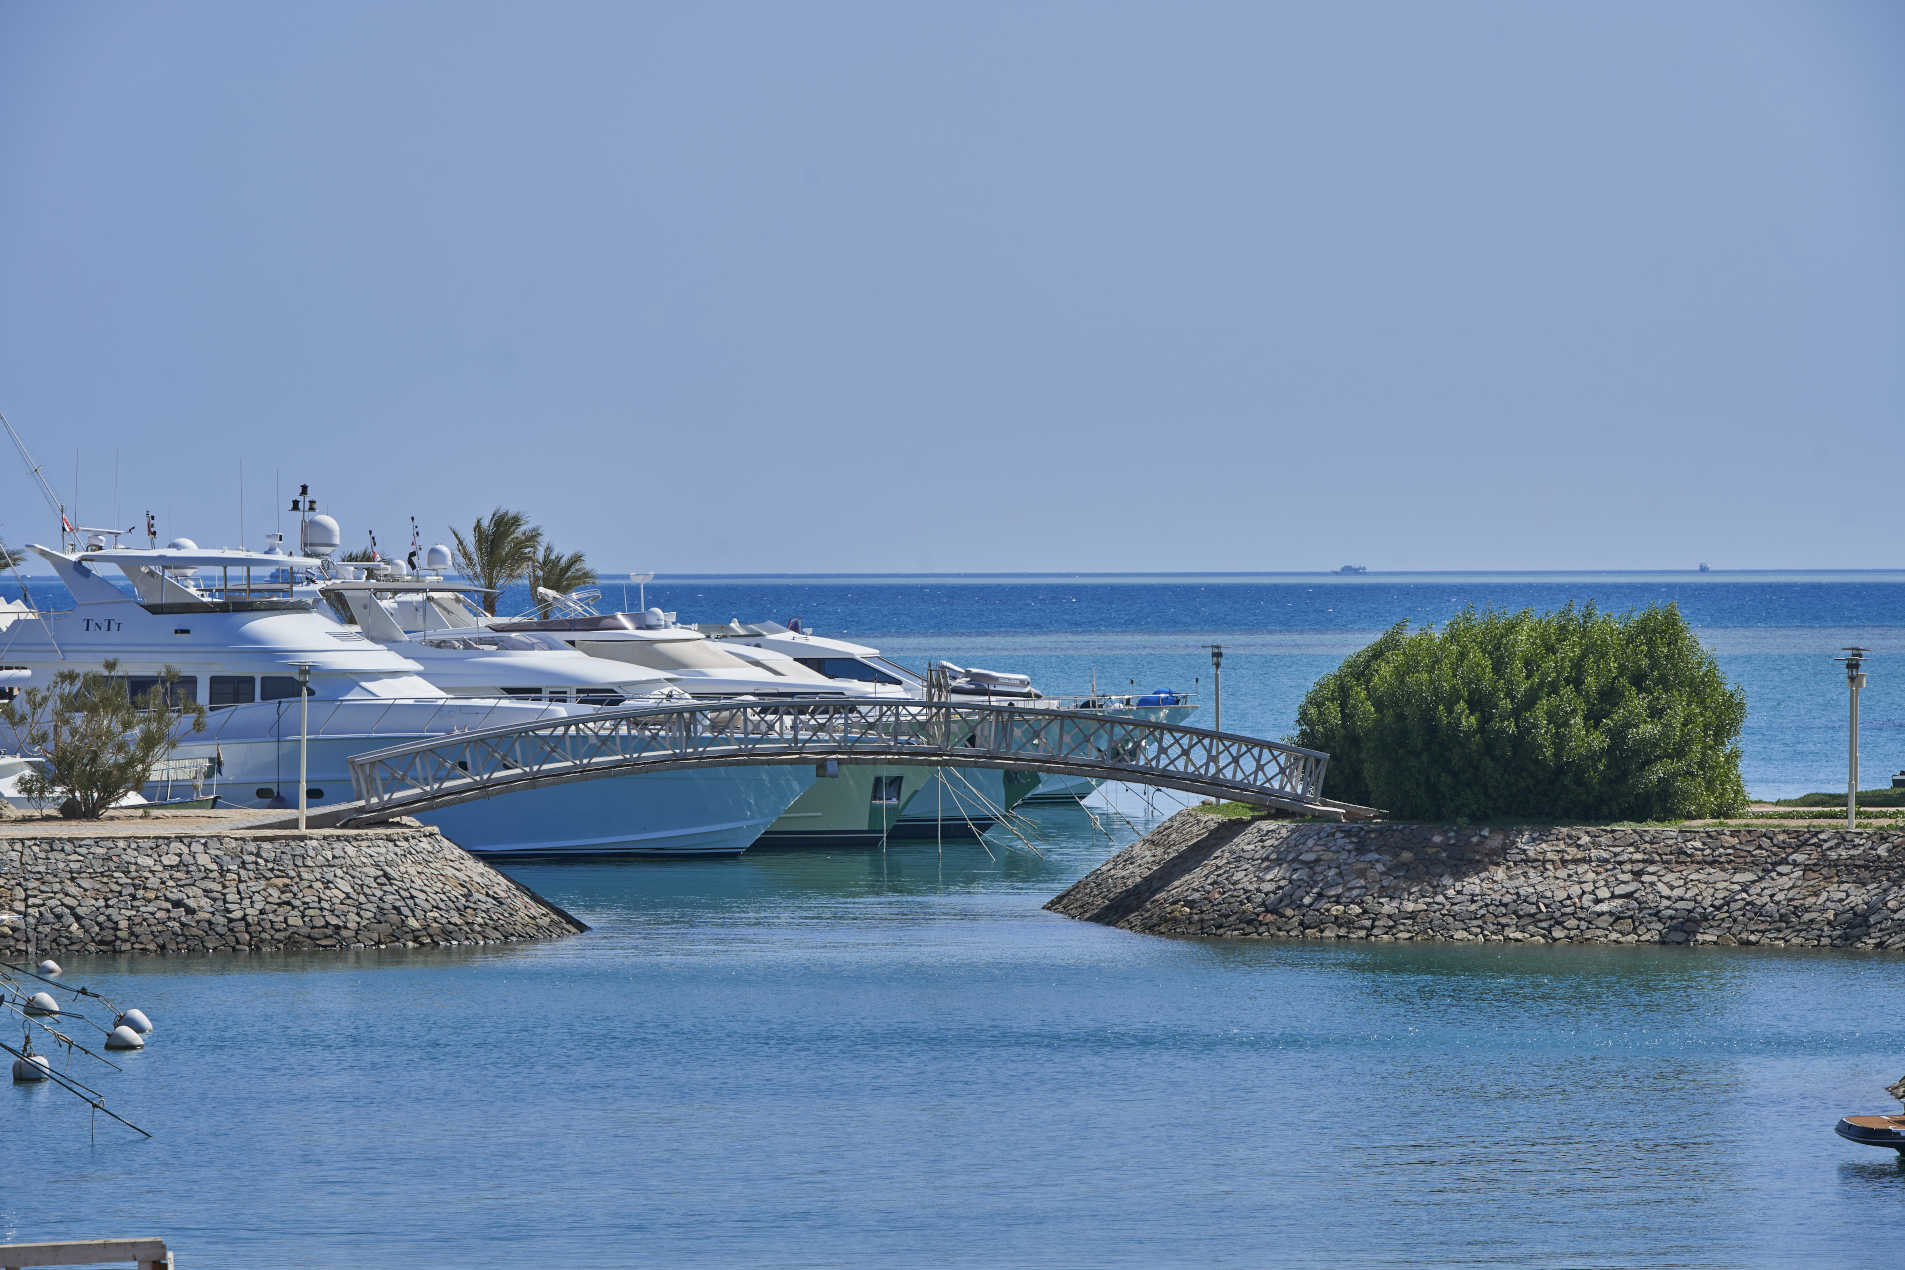 a view of the marina and yachts dock in abu tig marina el gouna from captain's inn hotel